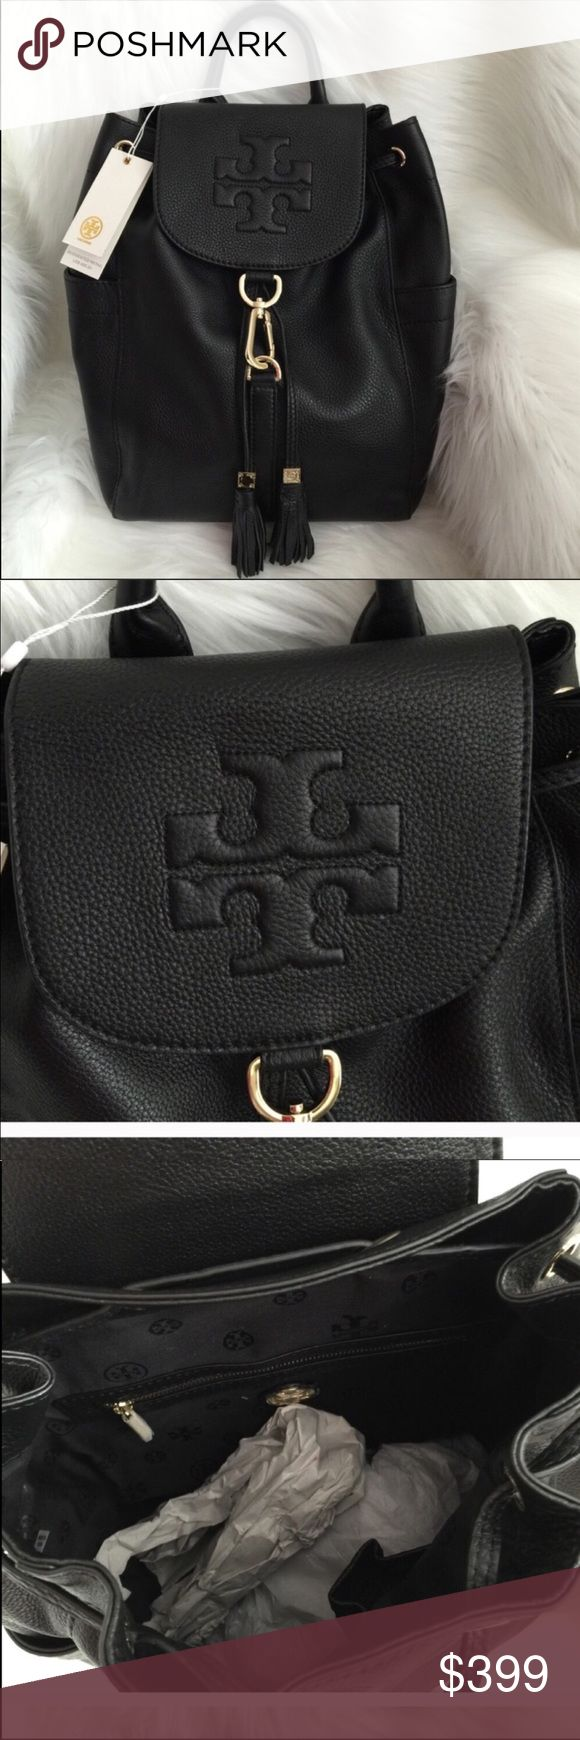 NWT Tory Burch Thea Large Leather Backpack Brand new with tag, store cards, and dust bag. Still in original packaging. 100% authentic. Approx measurement: 13x11x6 Tory Burch Bags Backpacks